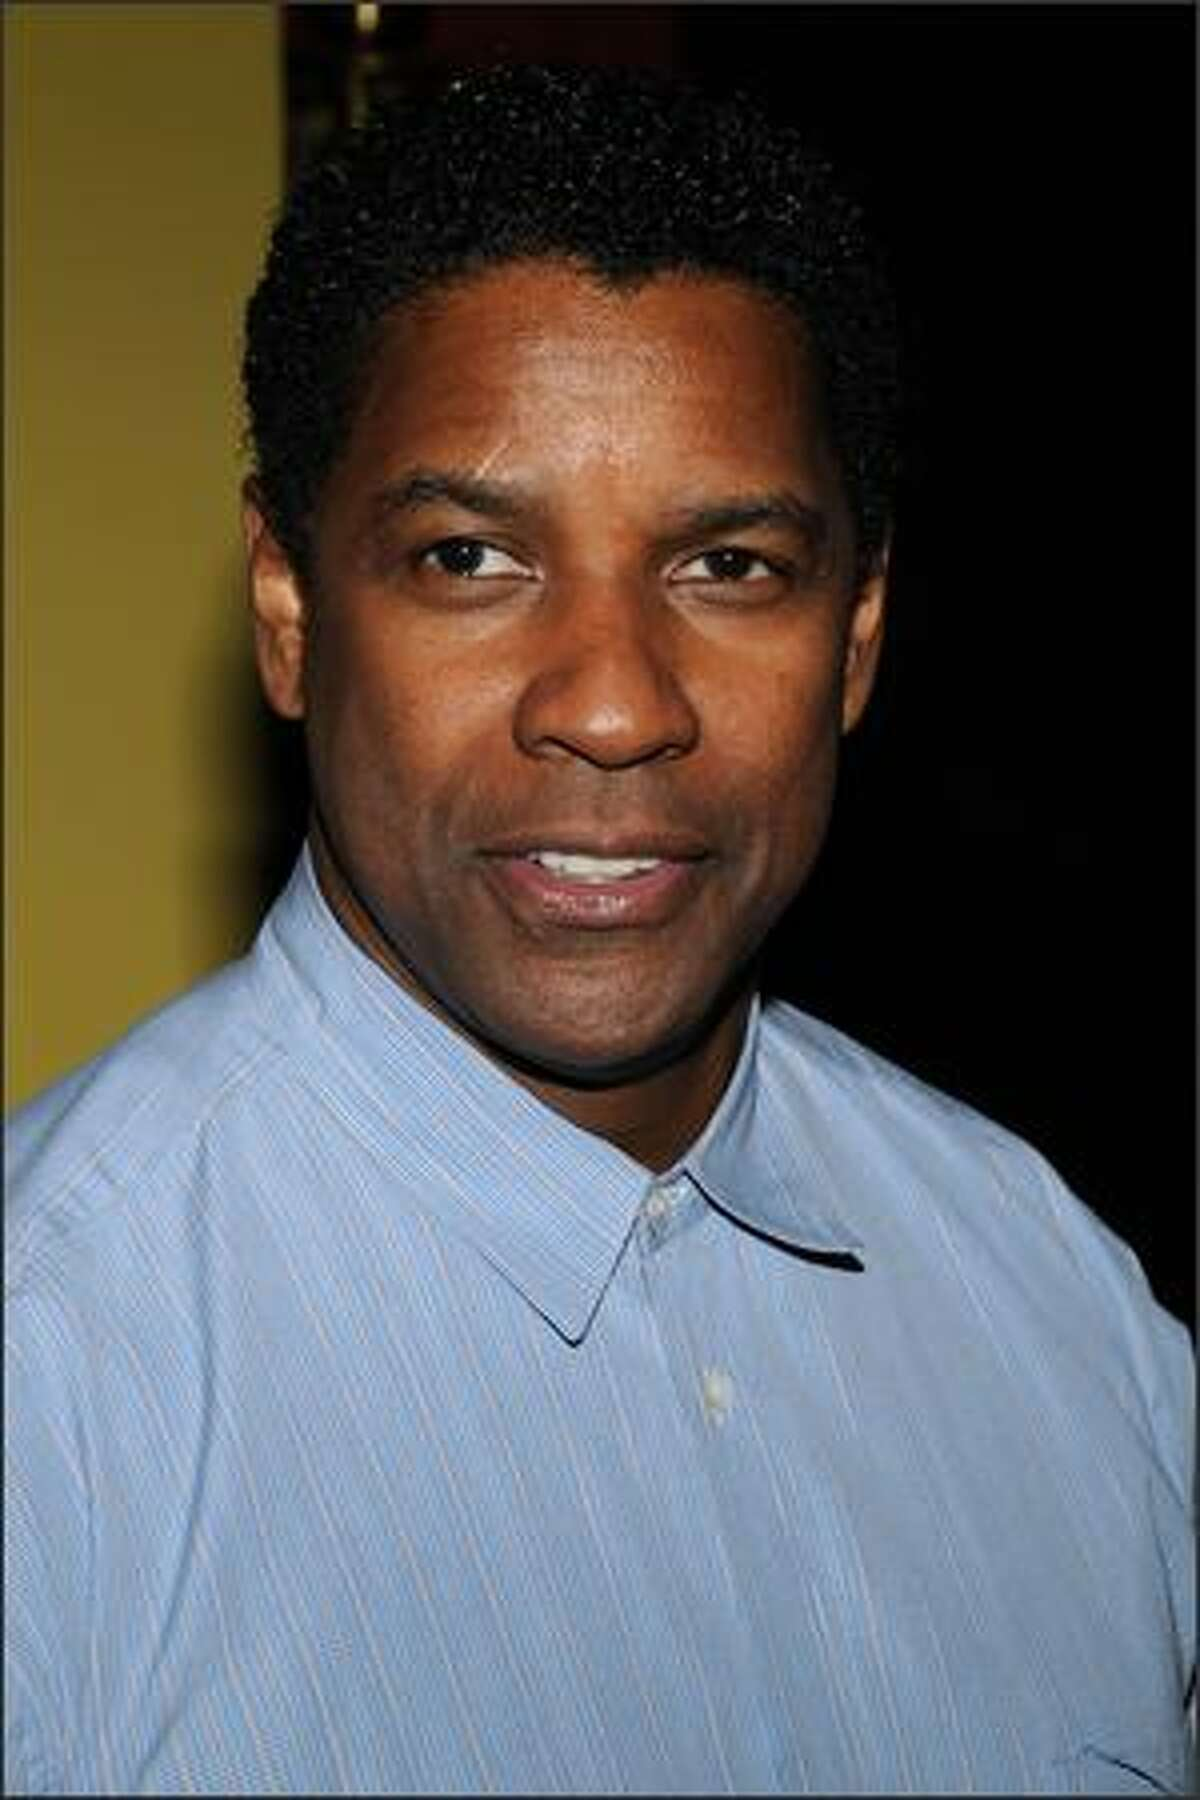 """Actor Denzel Washington arrives at the premiere of """"The Great Debaters"""" at the Ziegfeld theater on Wednesday in New York City."""